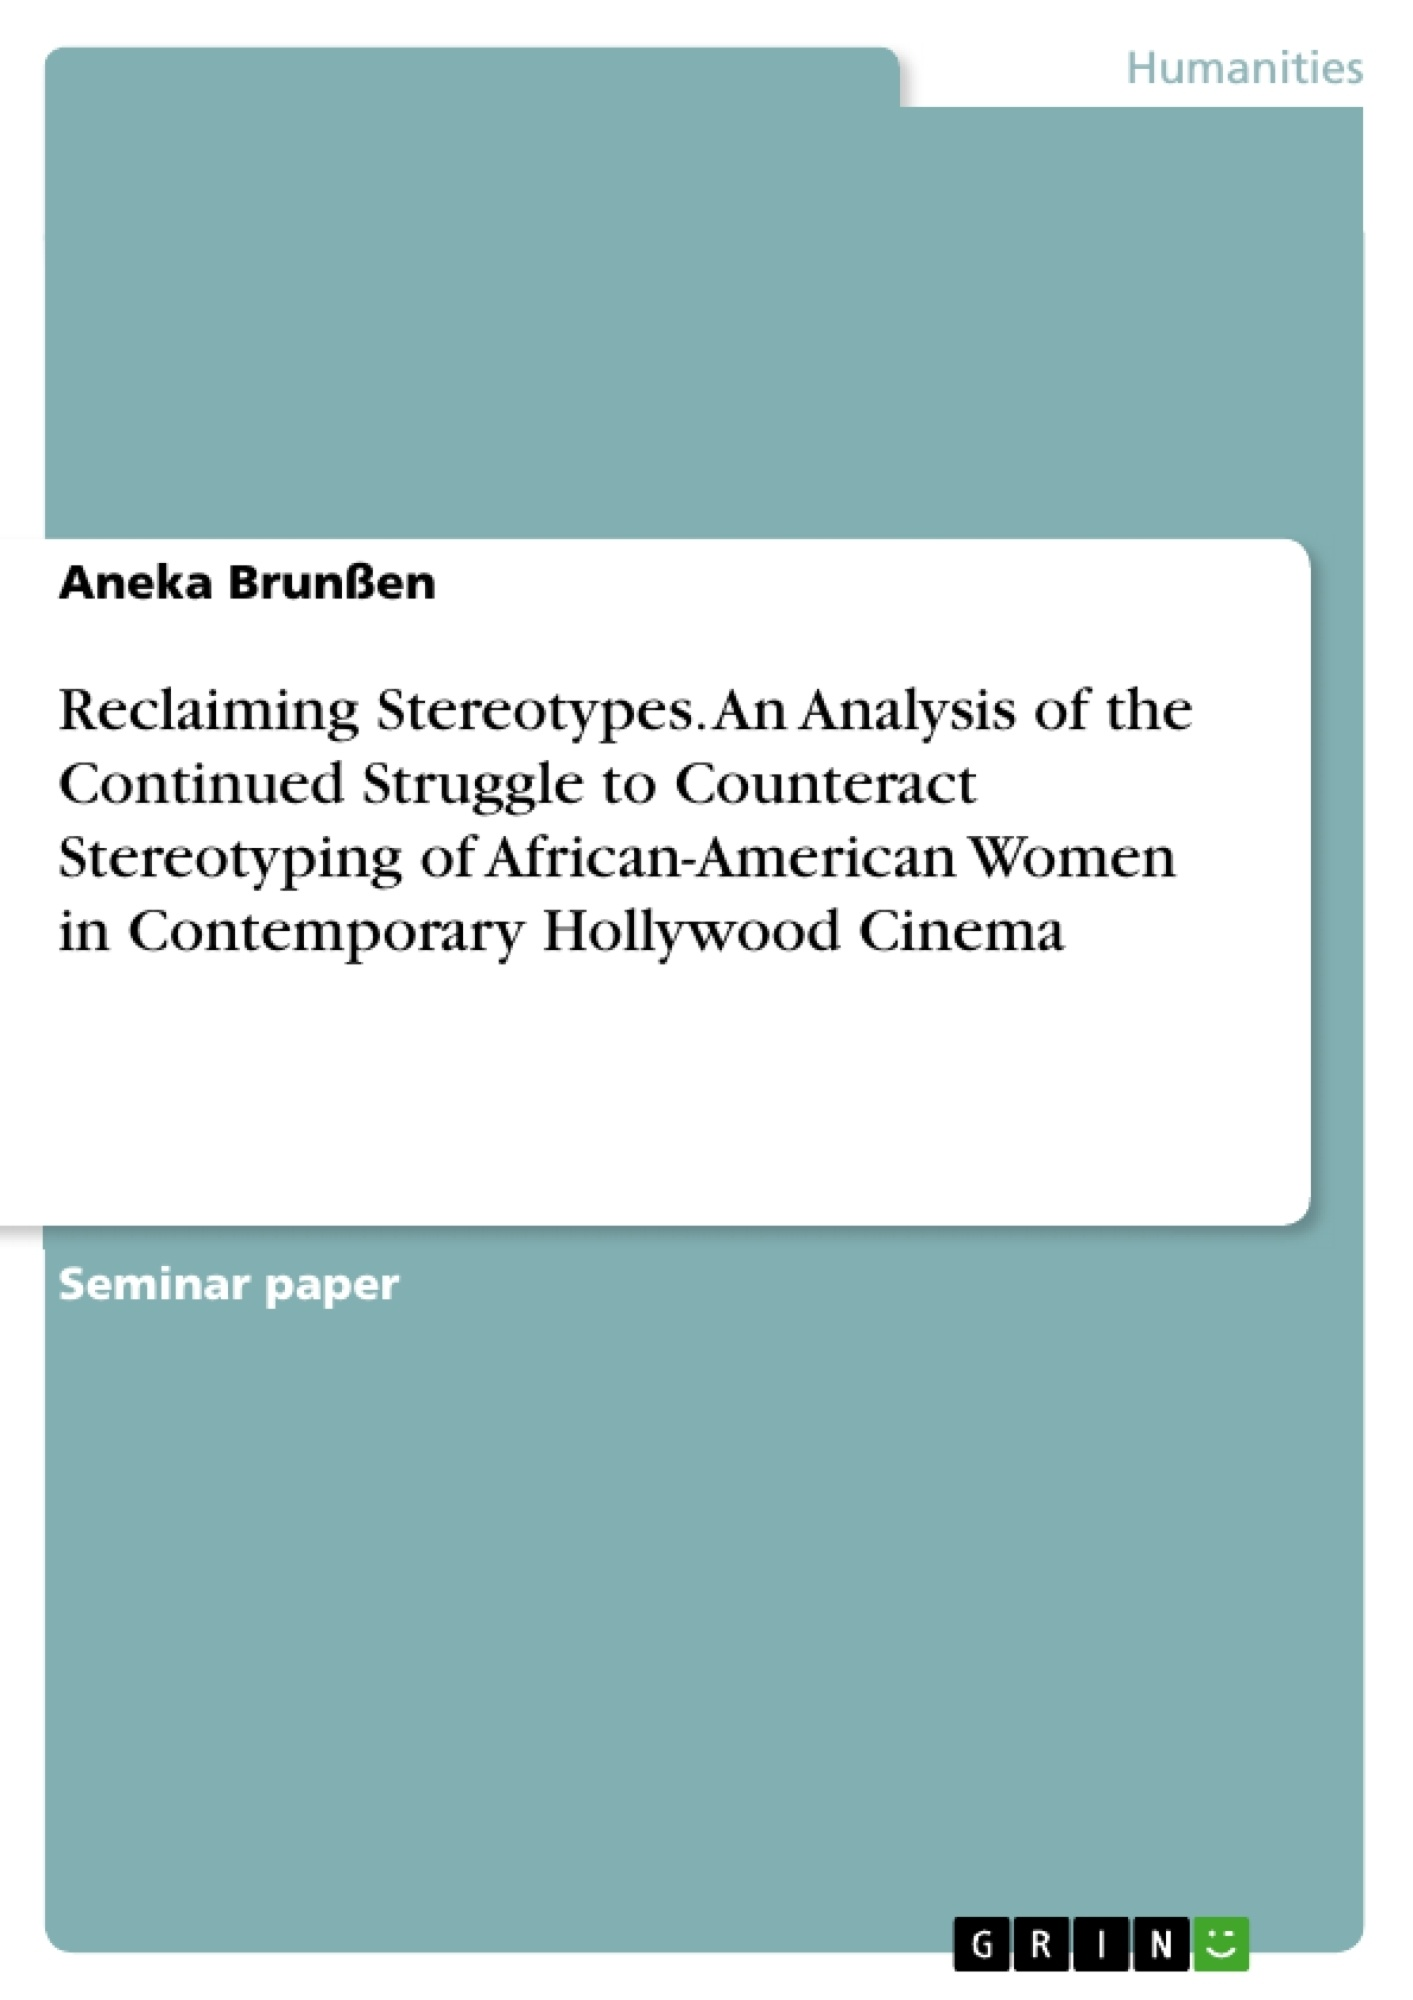 Title: Reclaiming Stereotypes. An Analysis of the Continued Struggle to Counteract Stereotyping of African-American Women in Contemporary Hollywood Cinema